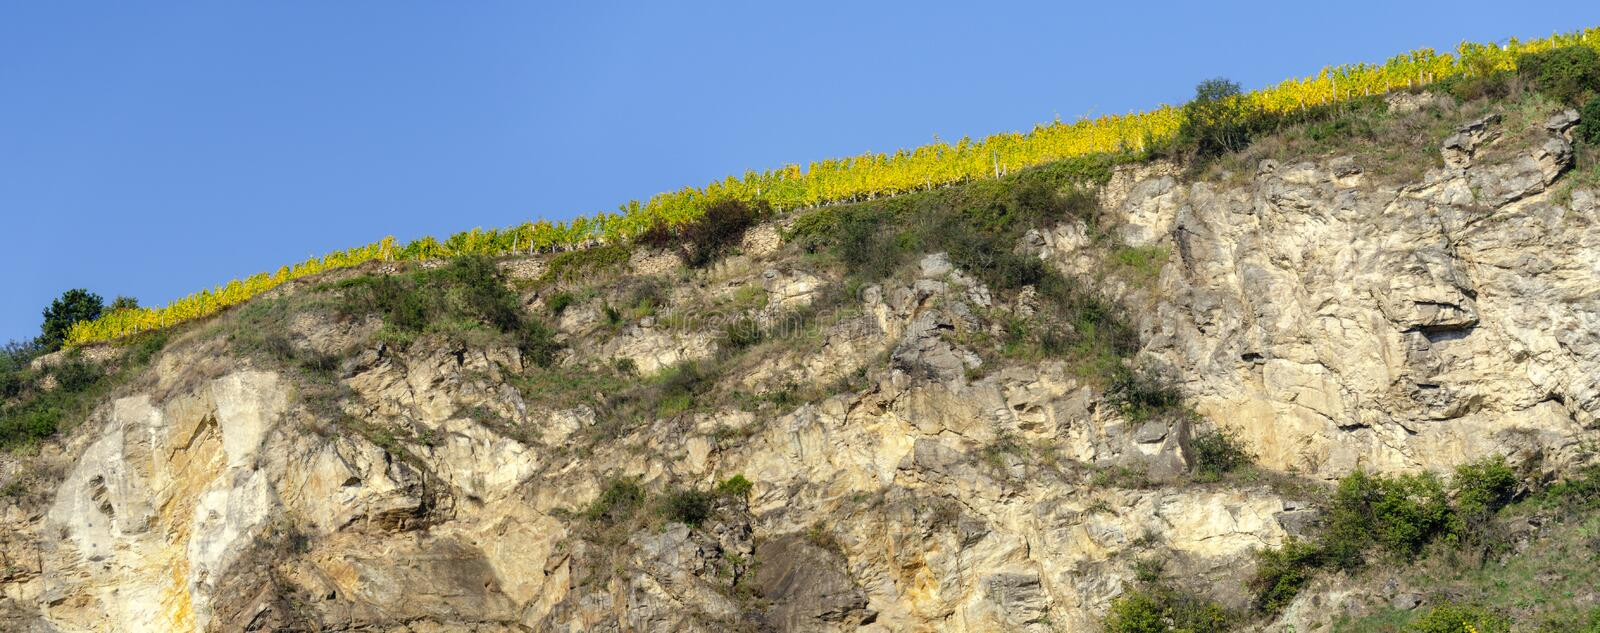 Vignoble sur une colline de loess photo libre de droits